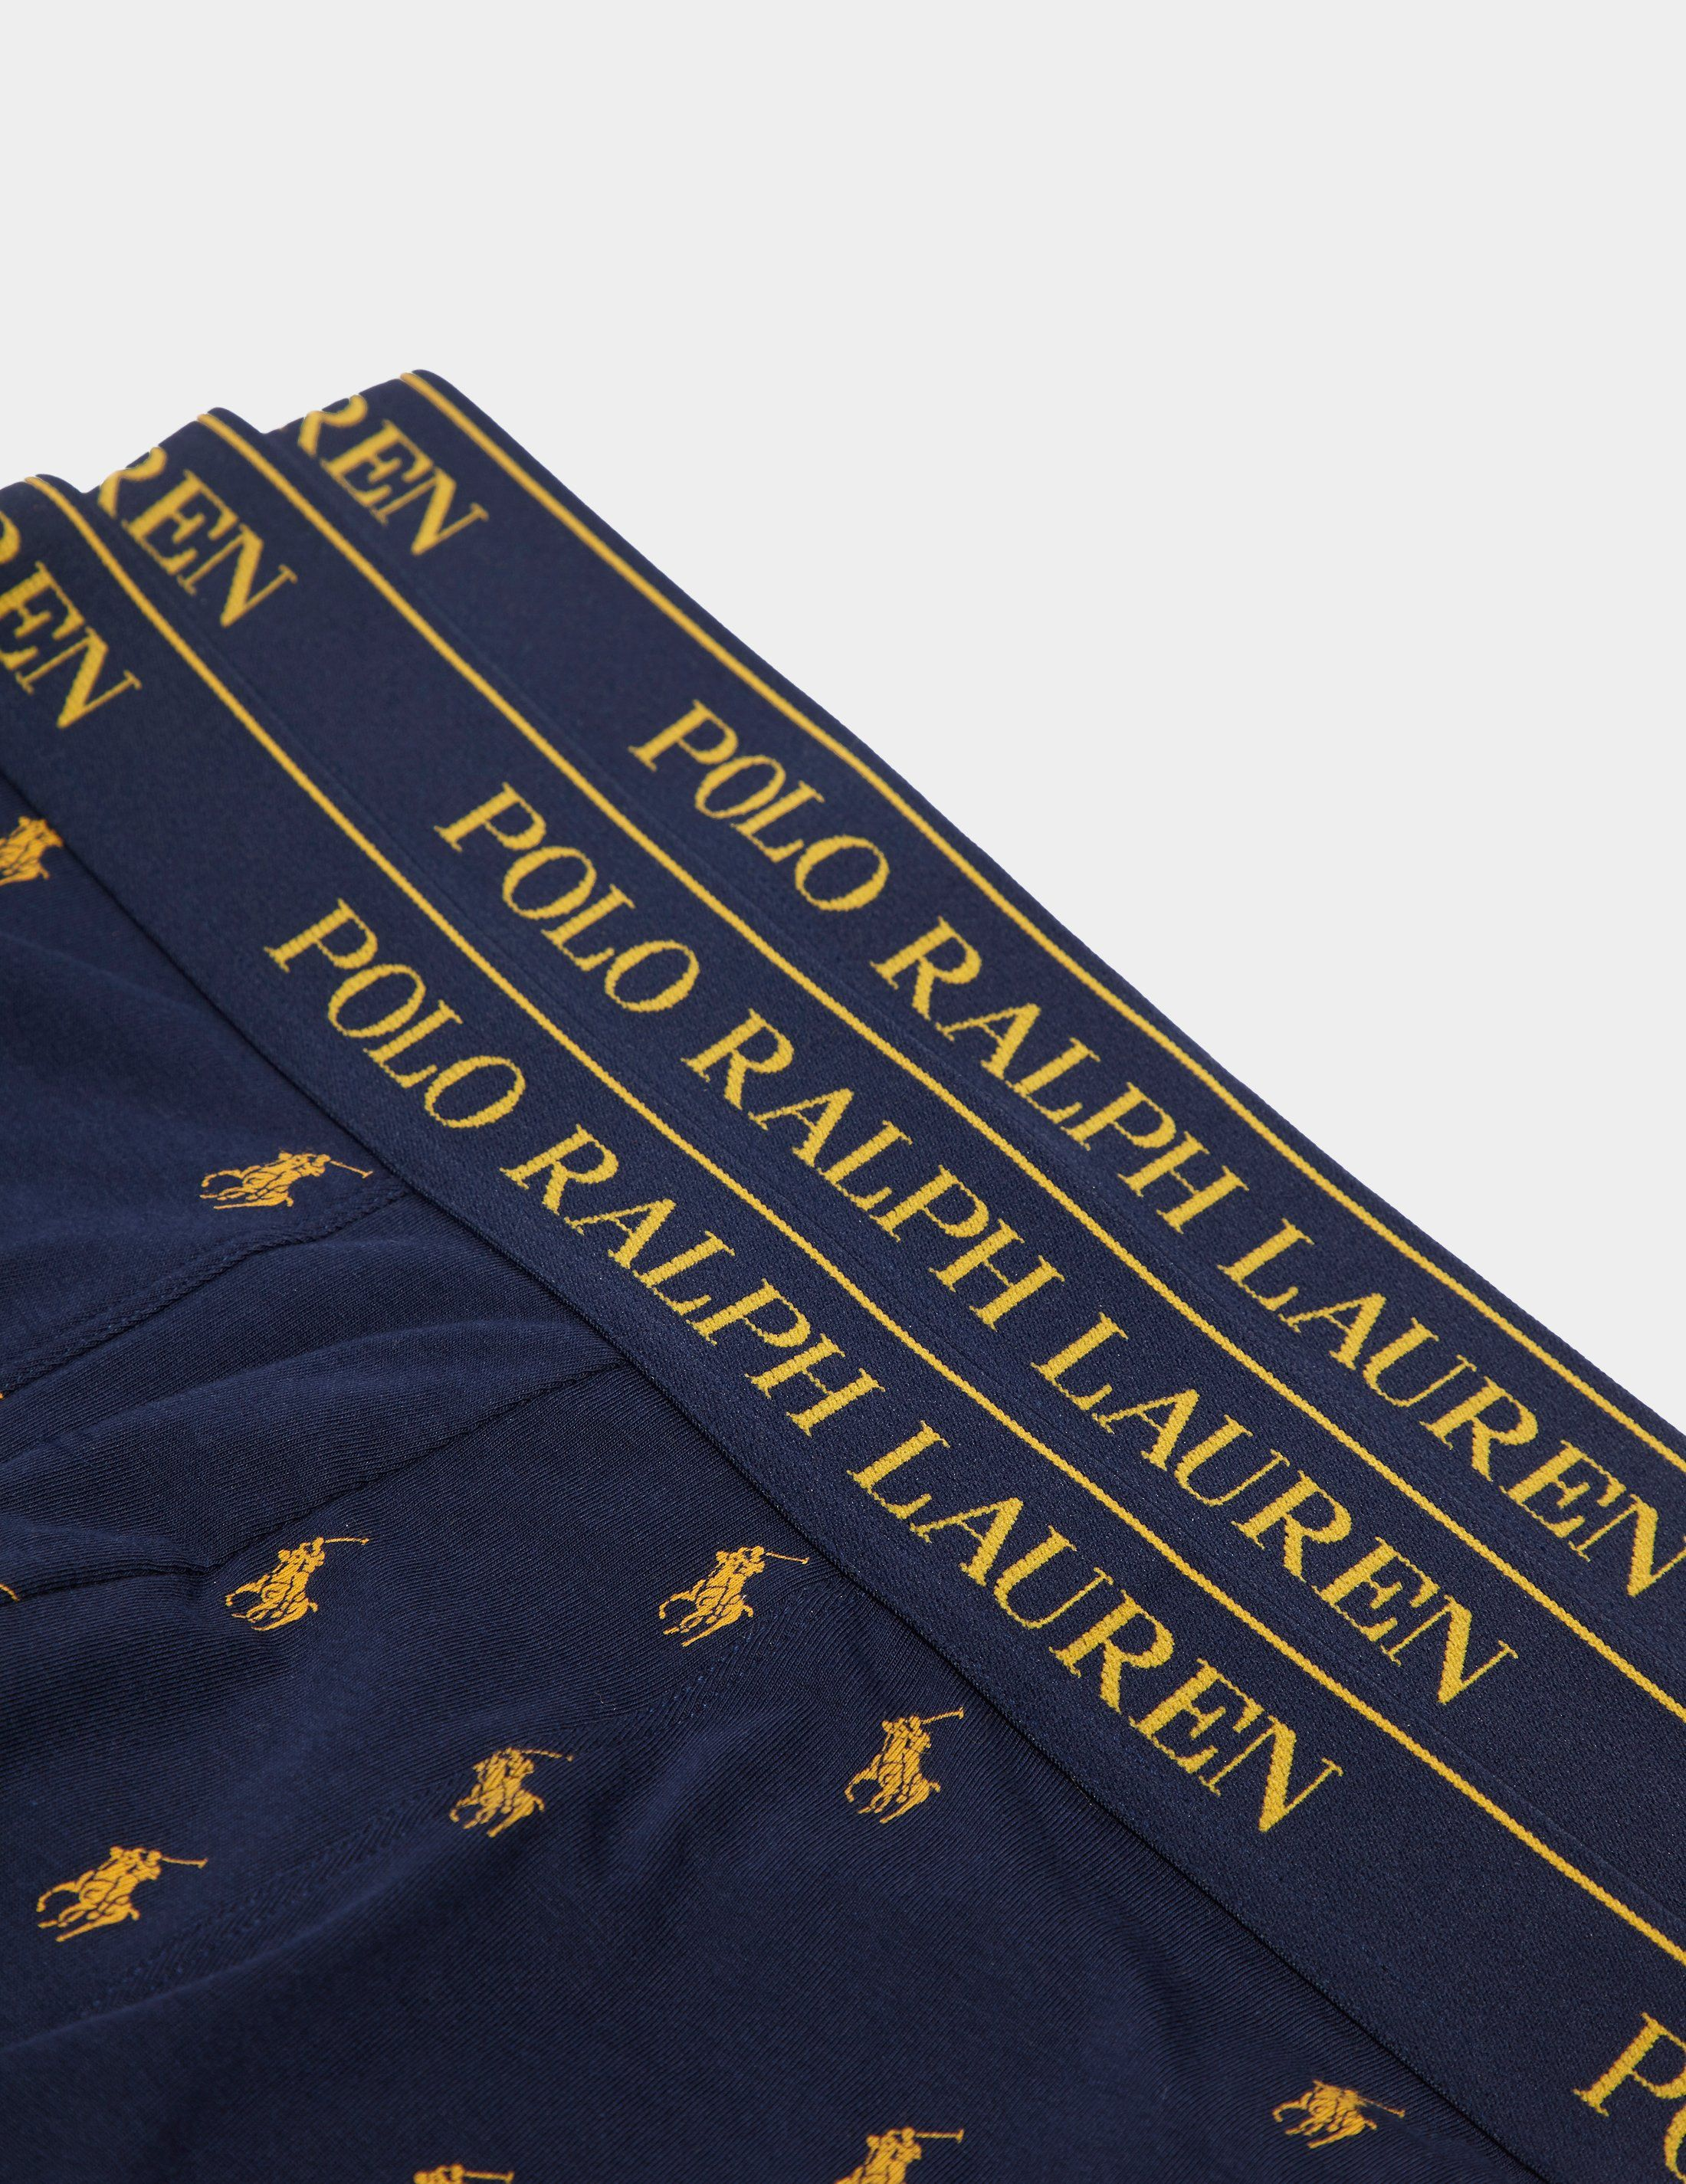 Polo Ralph Lauren 3-Pack All Over Print Boxer Shorts